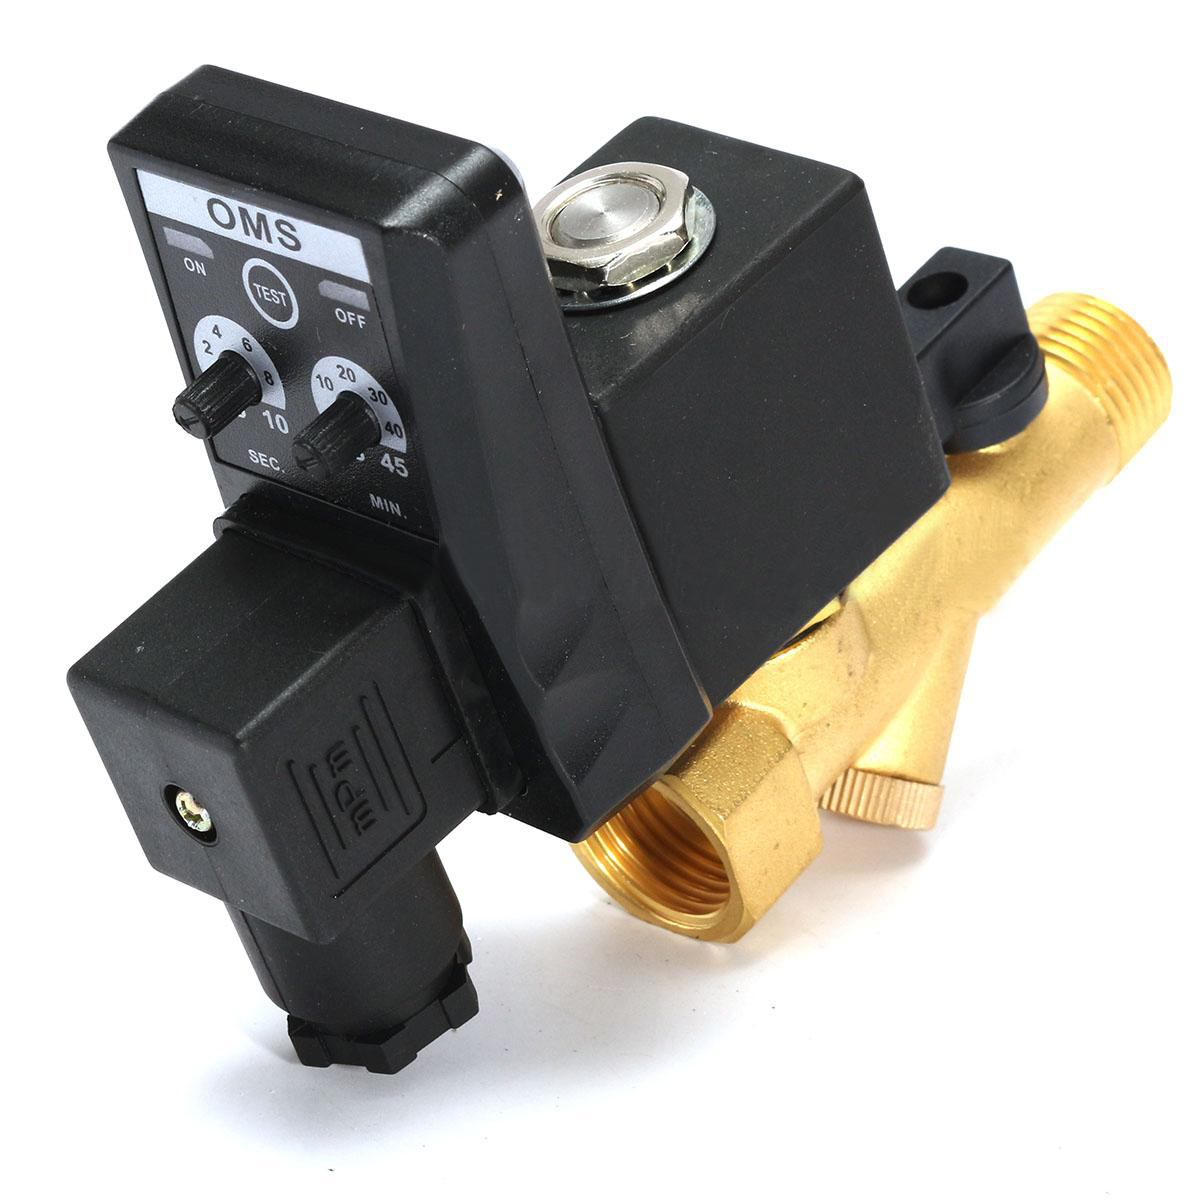 1pc Durable G1/2 Electronic Timed Drain Valve Automatic 2-way Solenoid Valves For Air Compressor Cylinders Gas Tank Mayitr